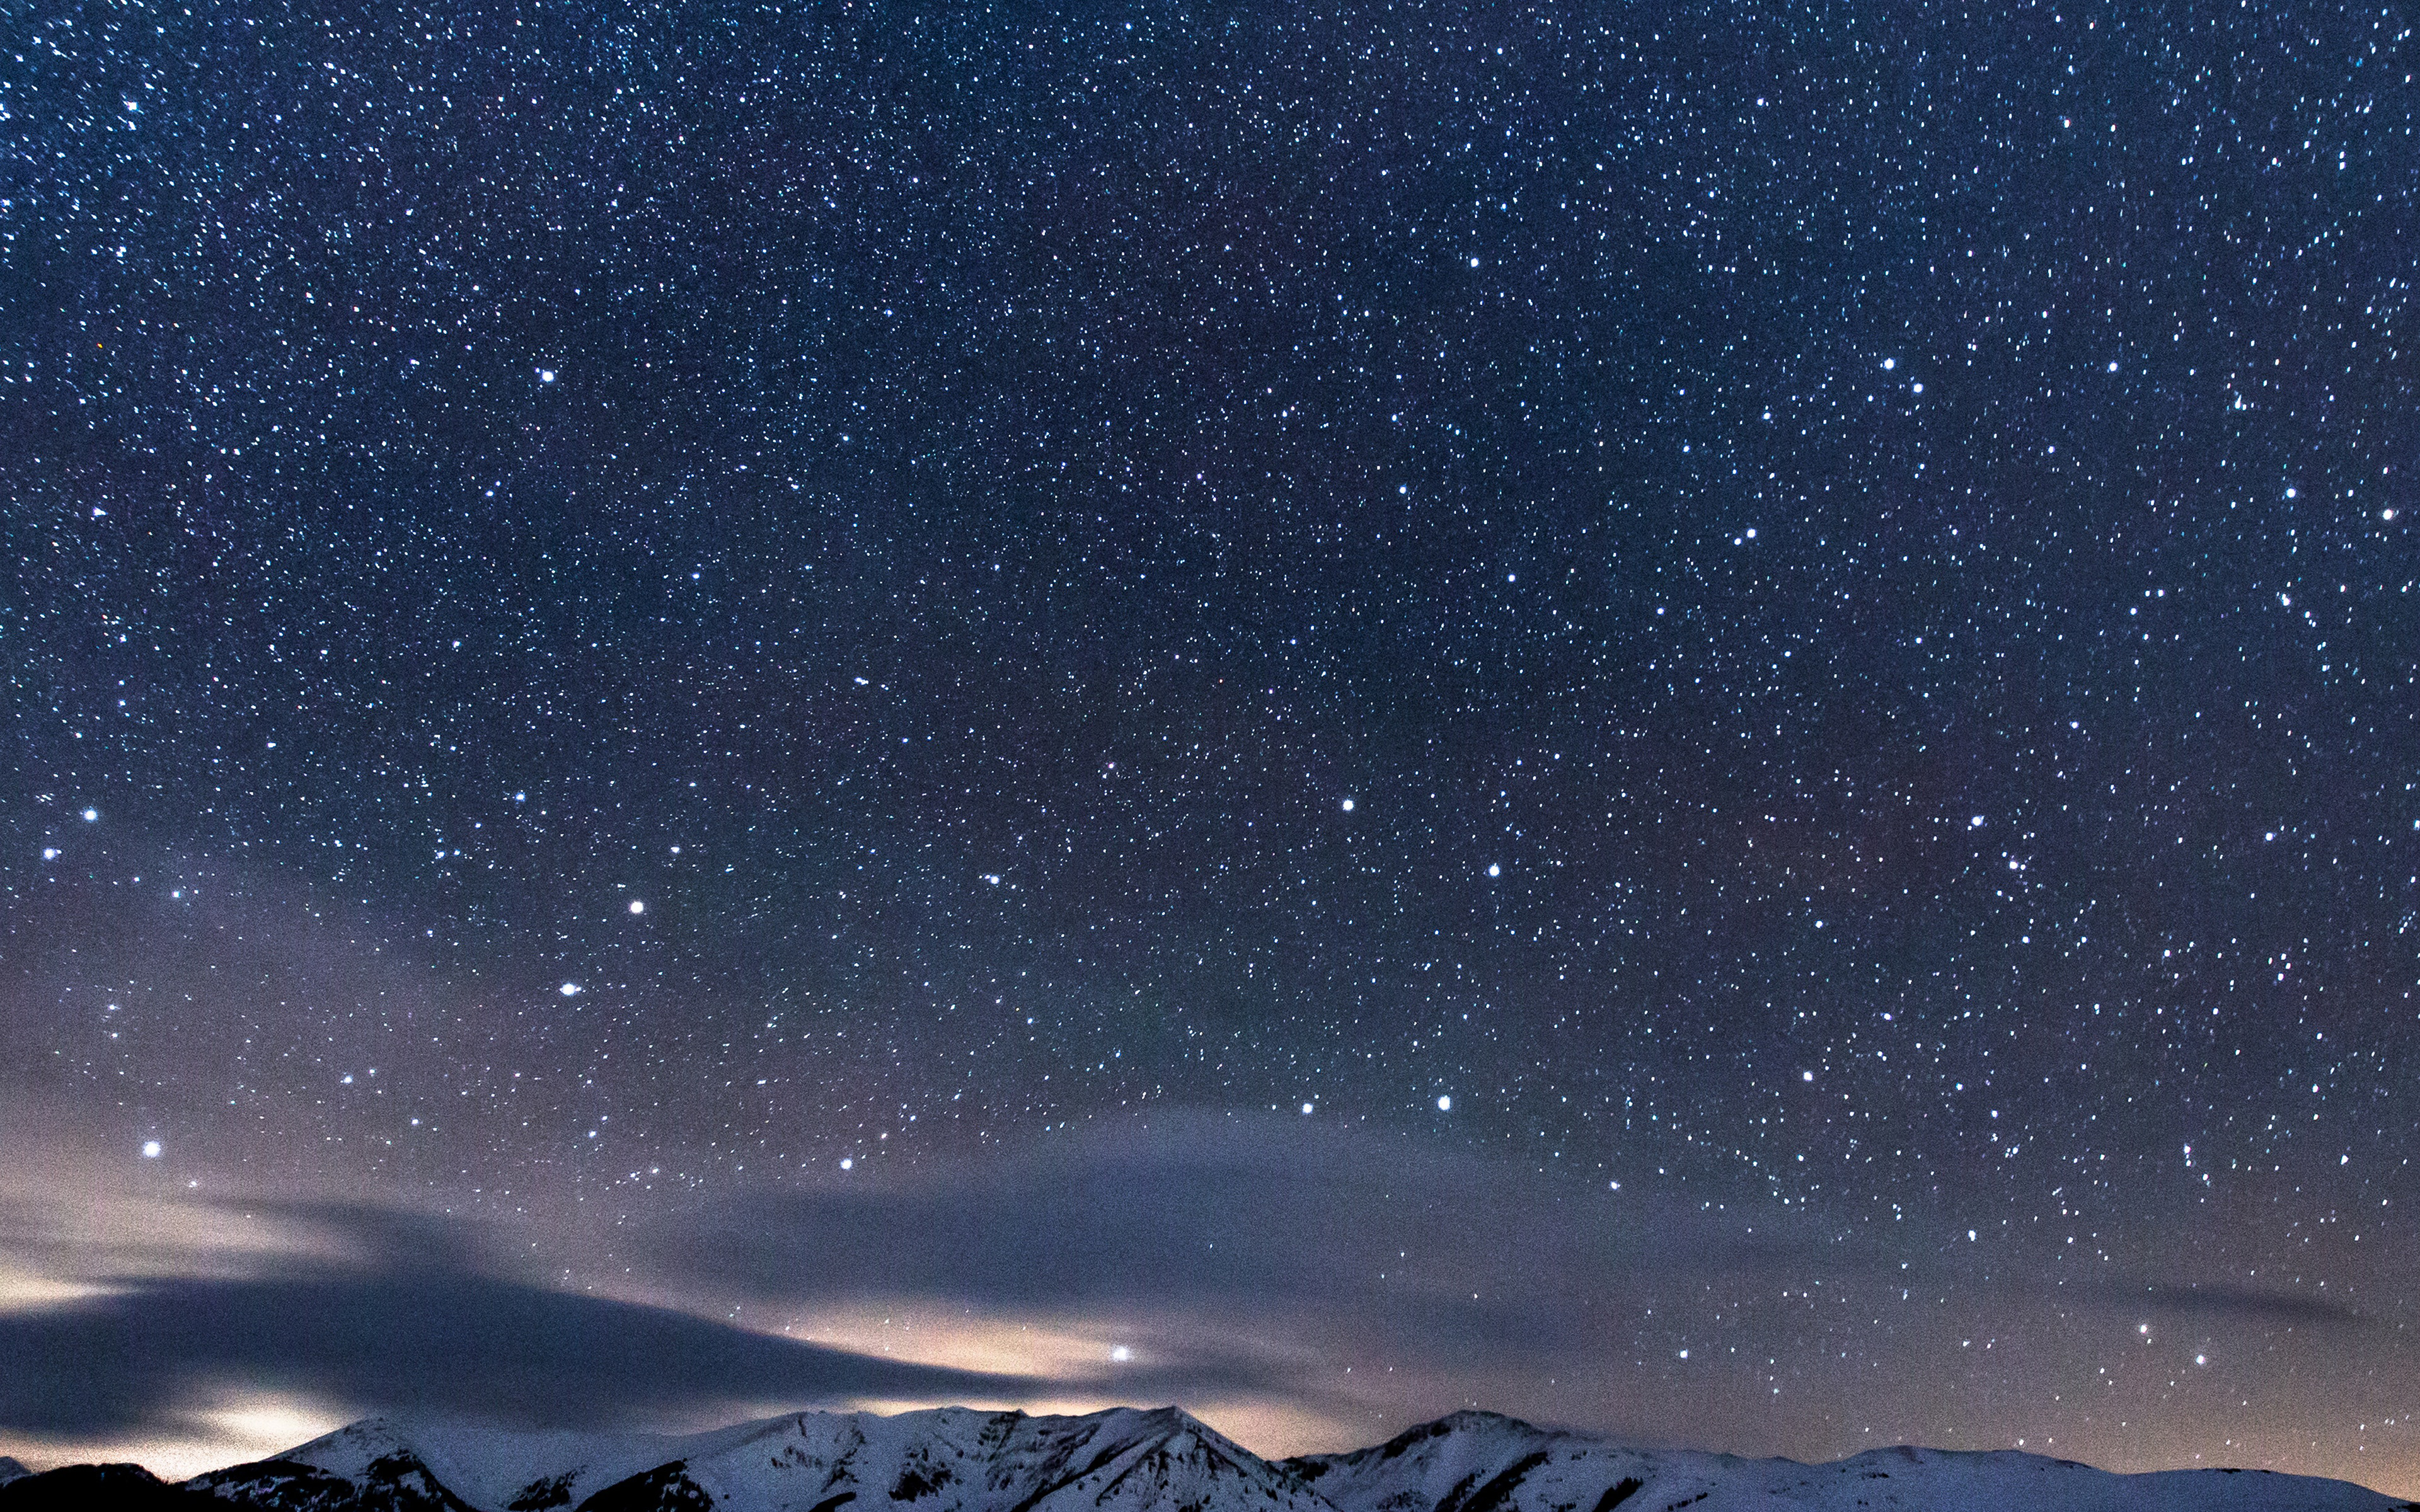 Ns40 Snow Night Sky Star Space Nature Wallpaper